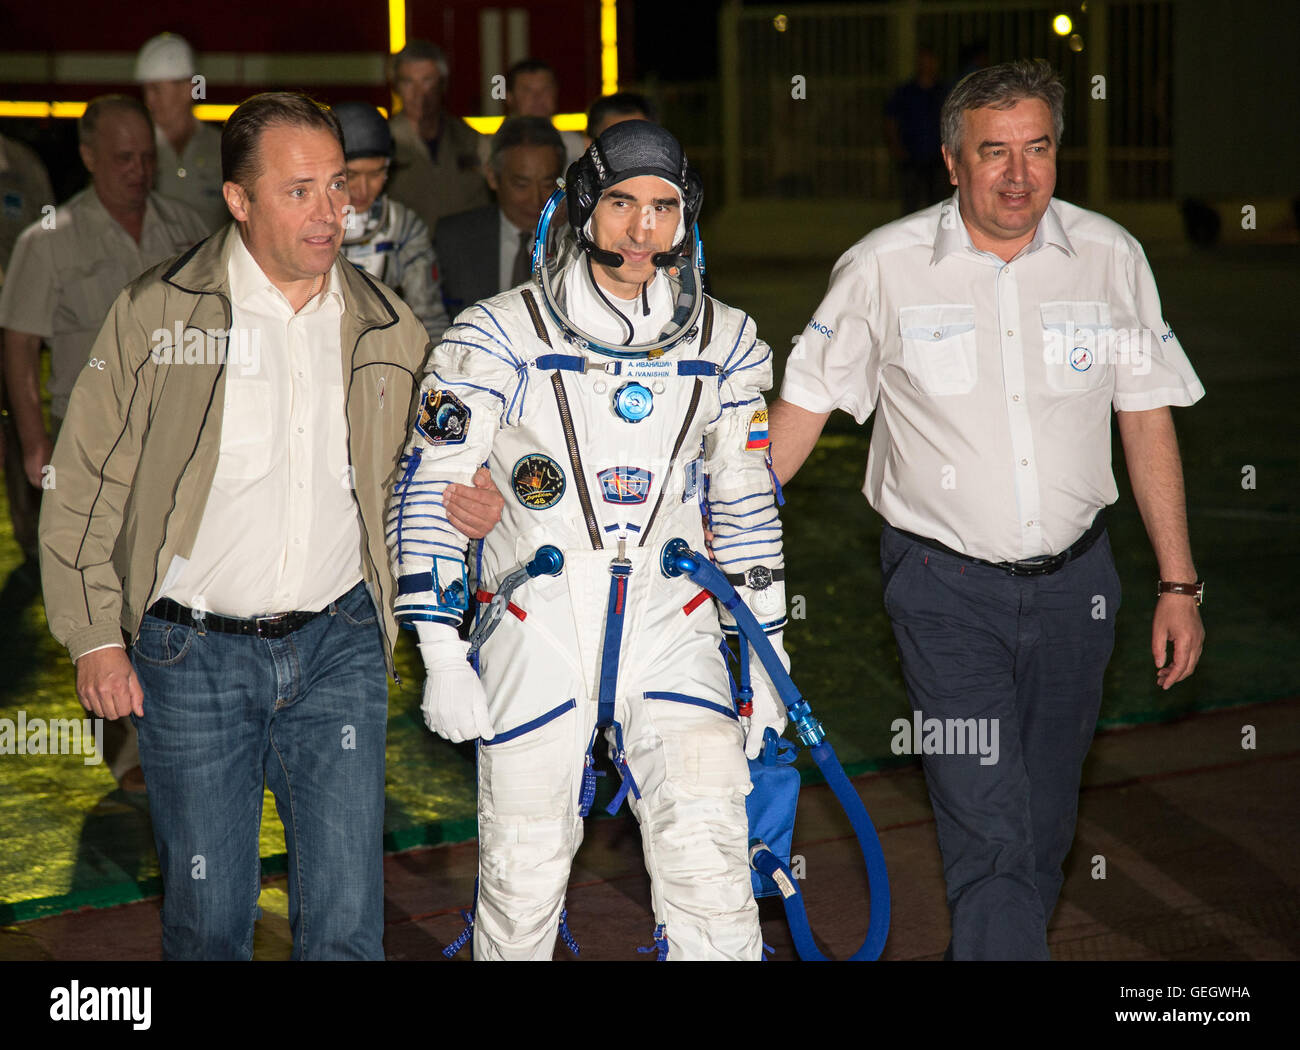 Expedition 48 Arrival at Launch Pad  07070036 - Stock Image